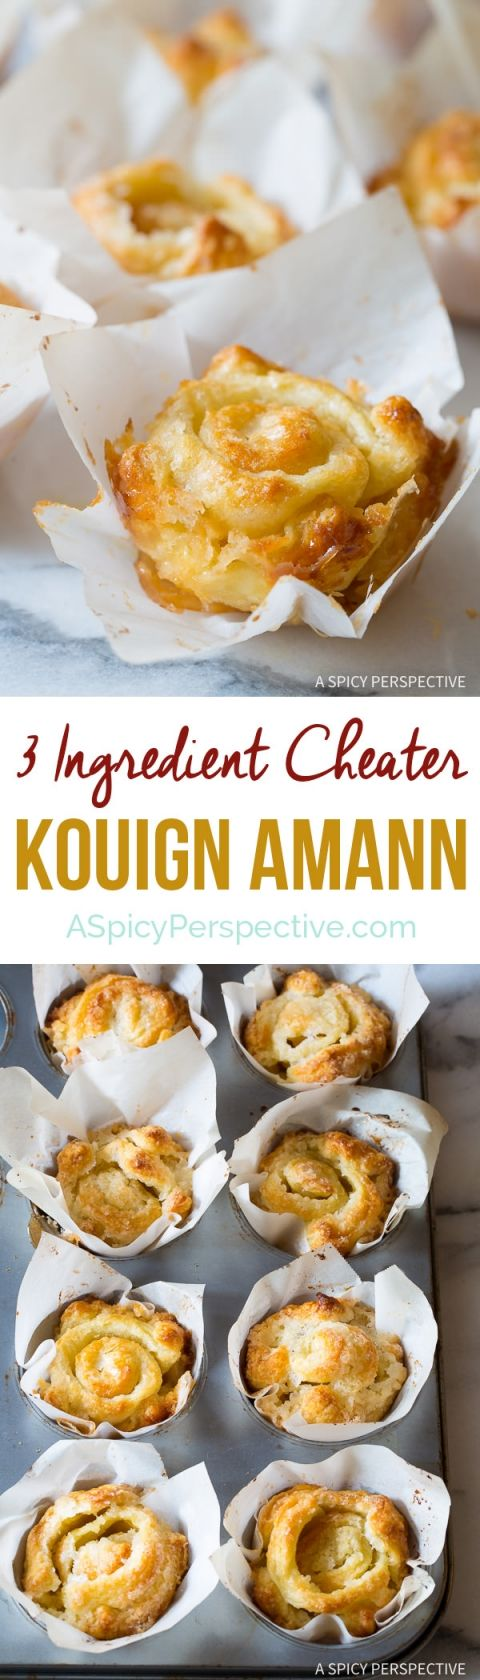 Fabulous 3-Ingredient Cheater Kouign Amann Recipe on ASpicyPerspective.com